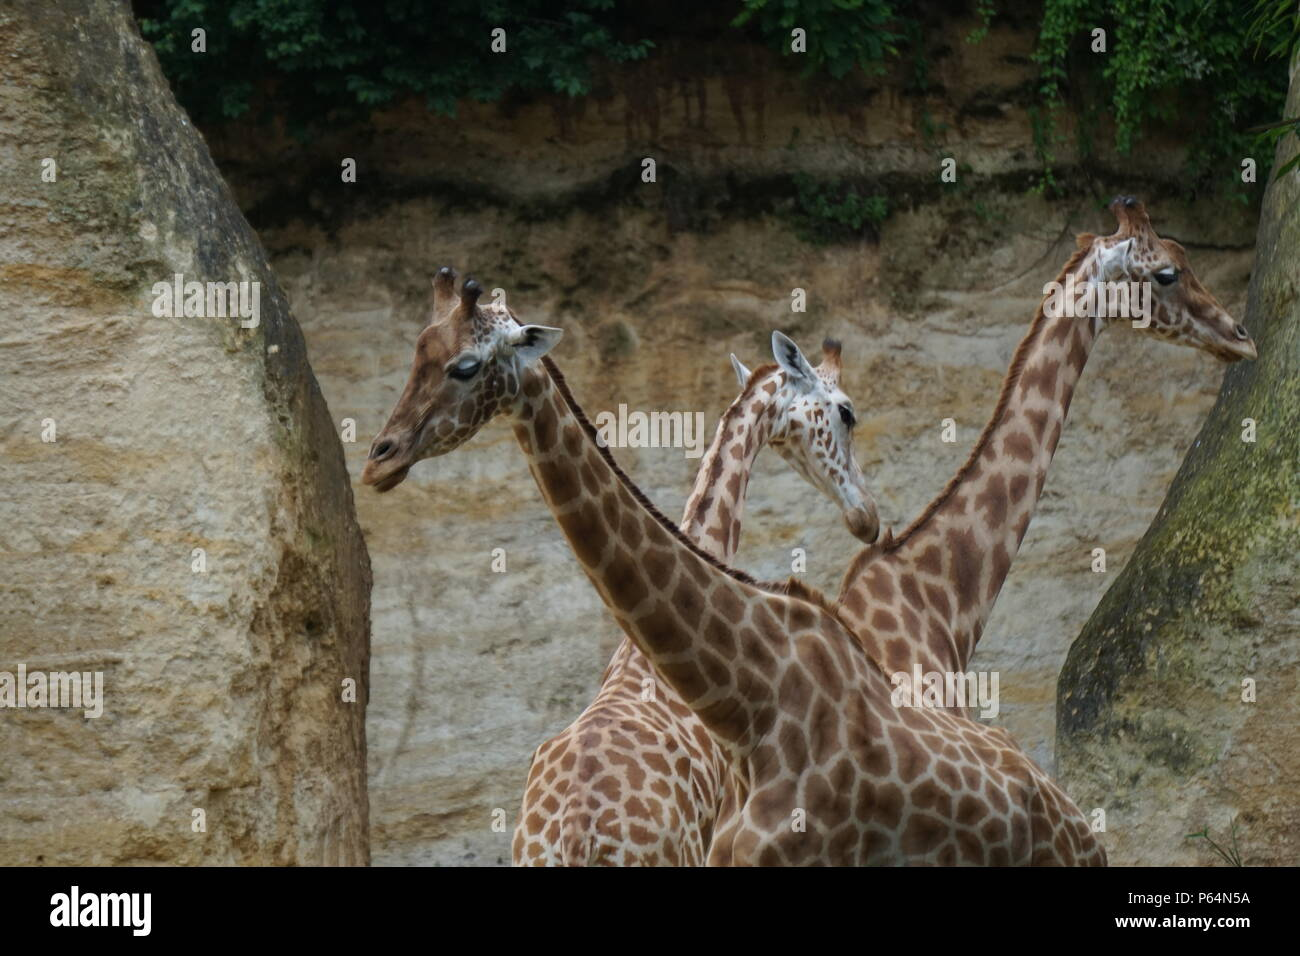 Three giraffes necks crossing each other path in the troglodyte zoo of Doue la Fontaine, France - Stock Image